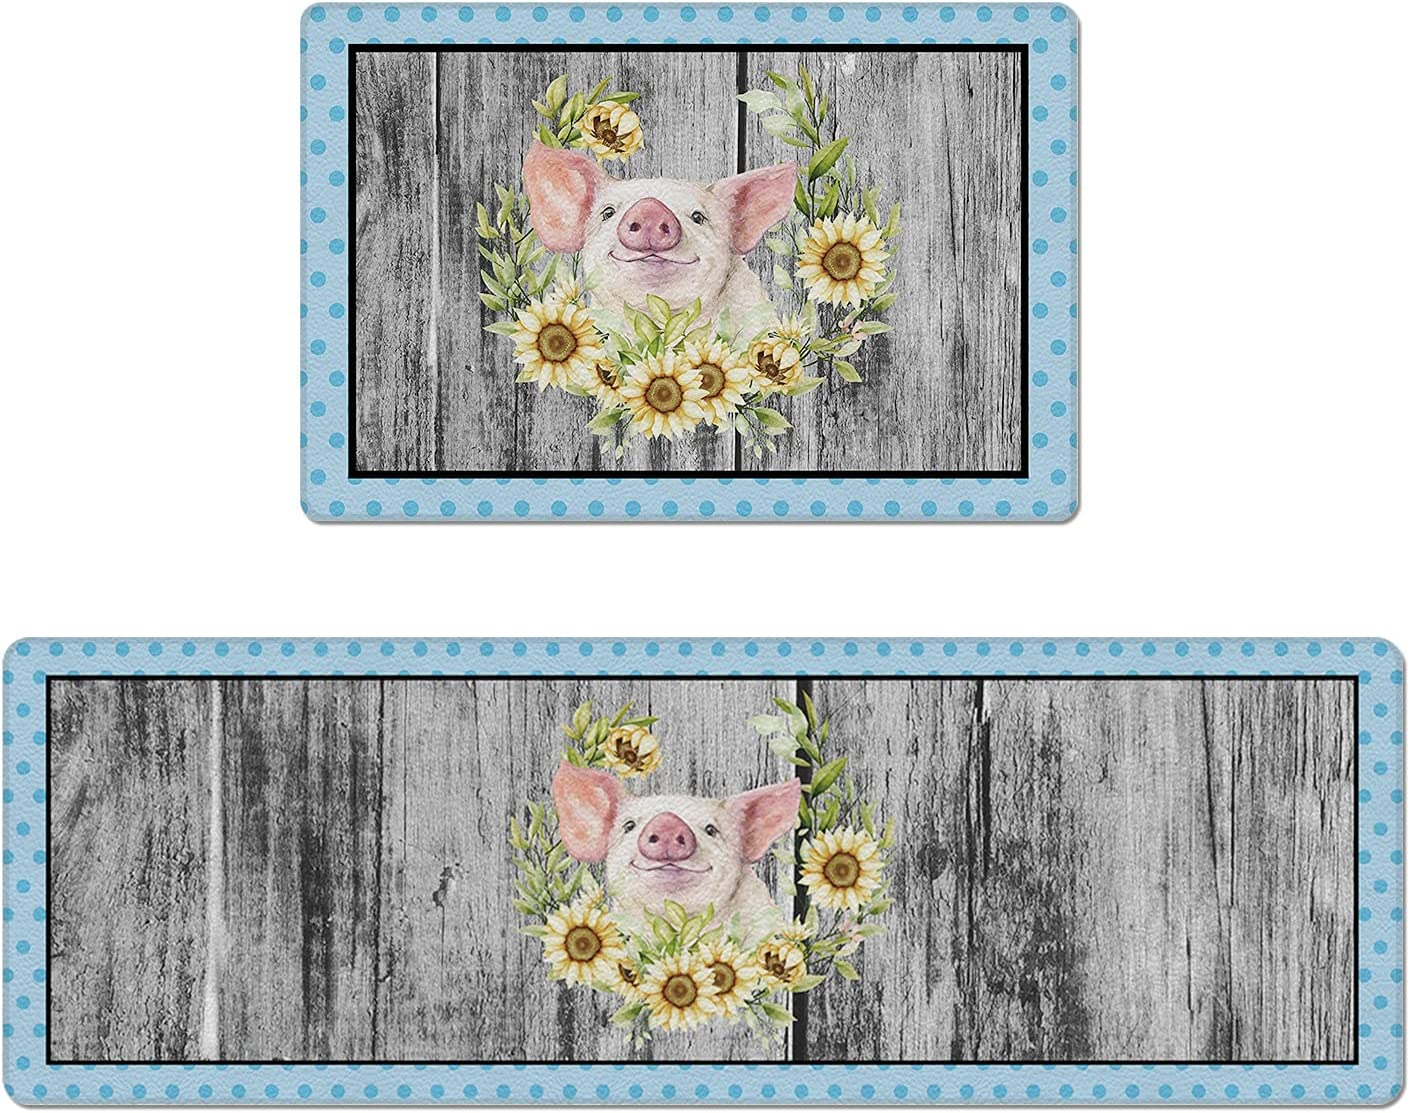 Set of 2 Kitchen Rug excellence shop PVC Mats and Leather C Non-Slip